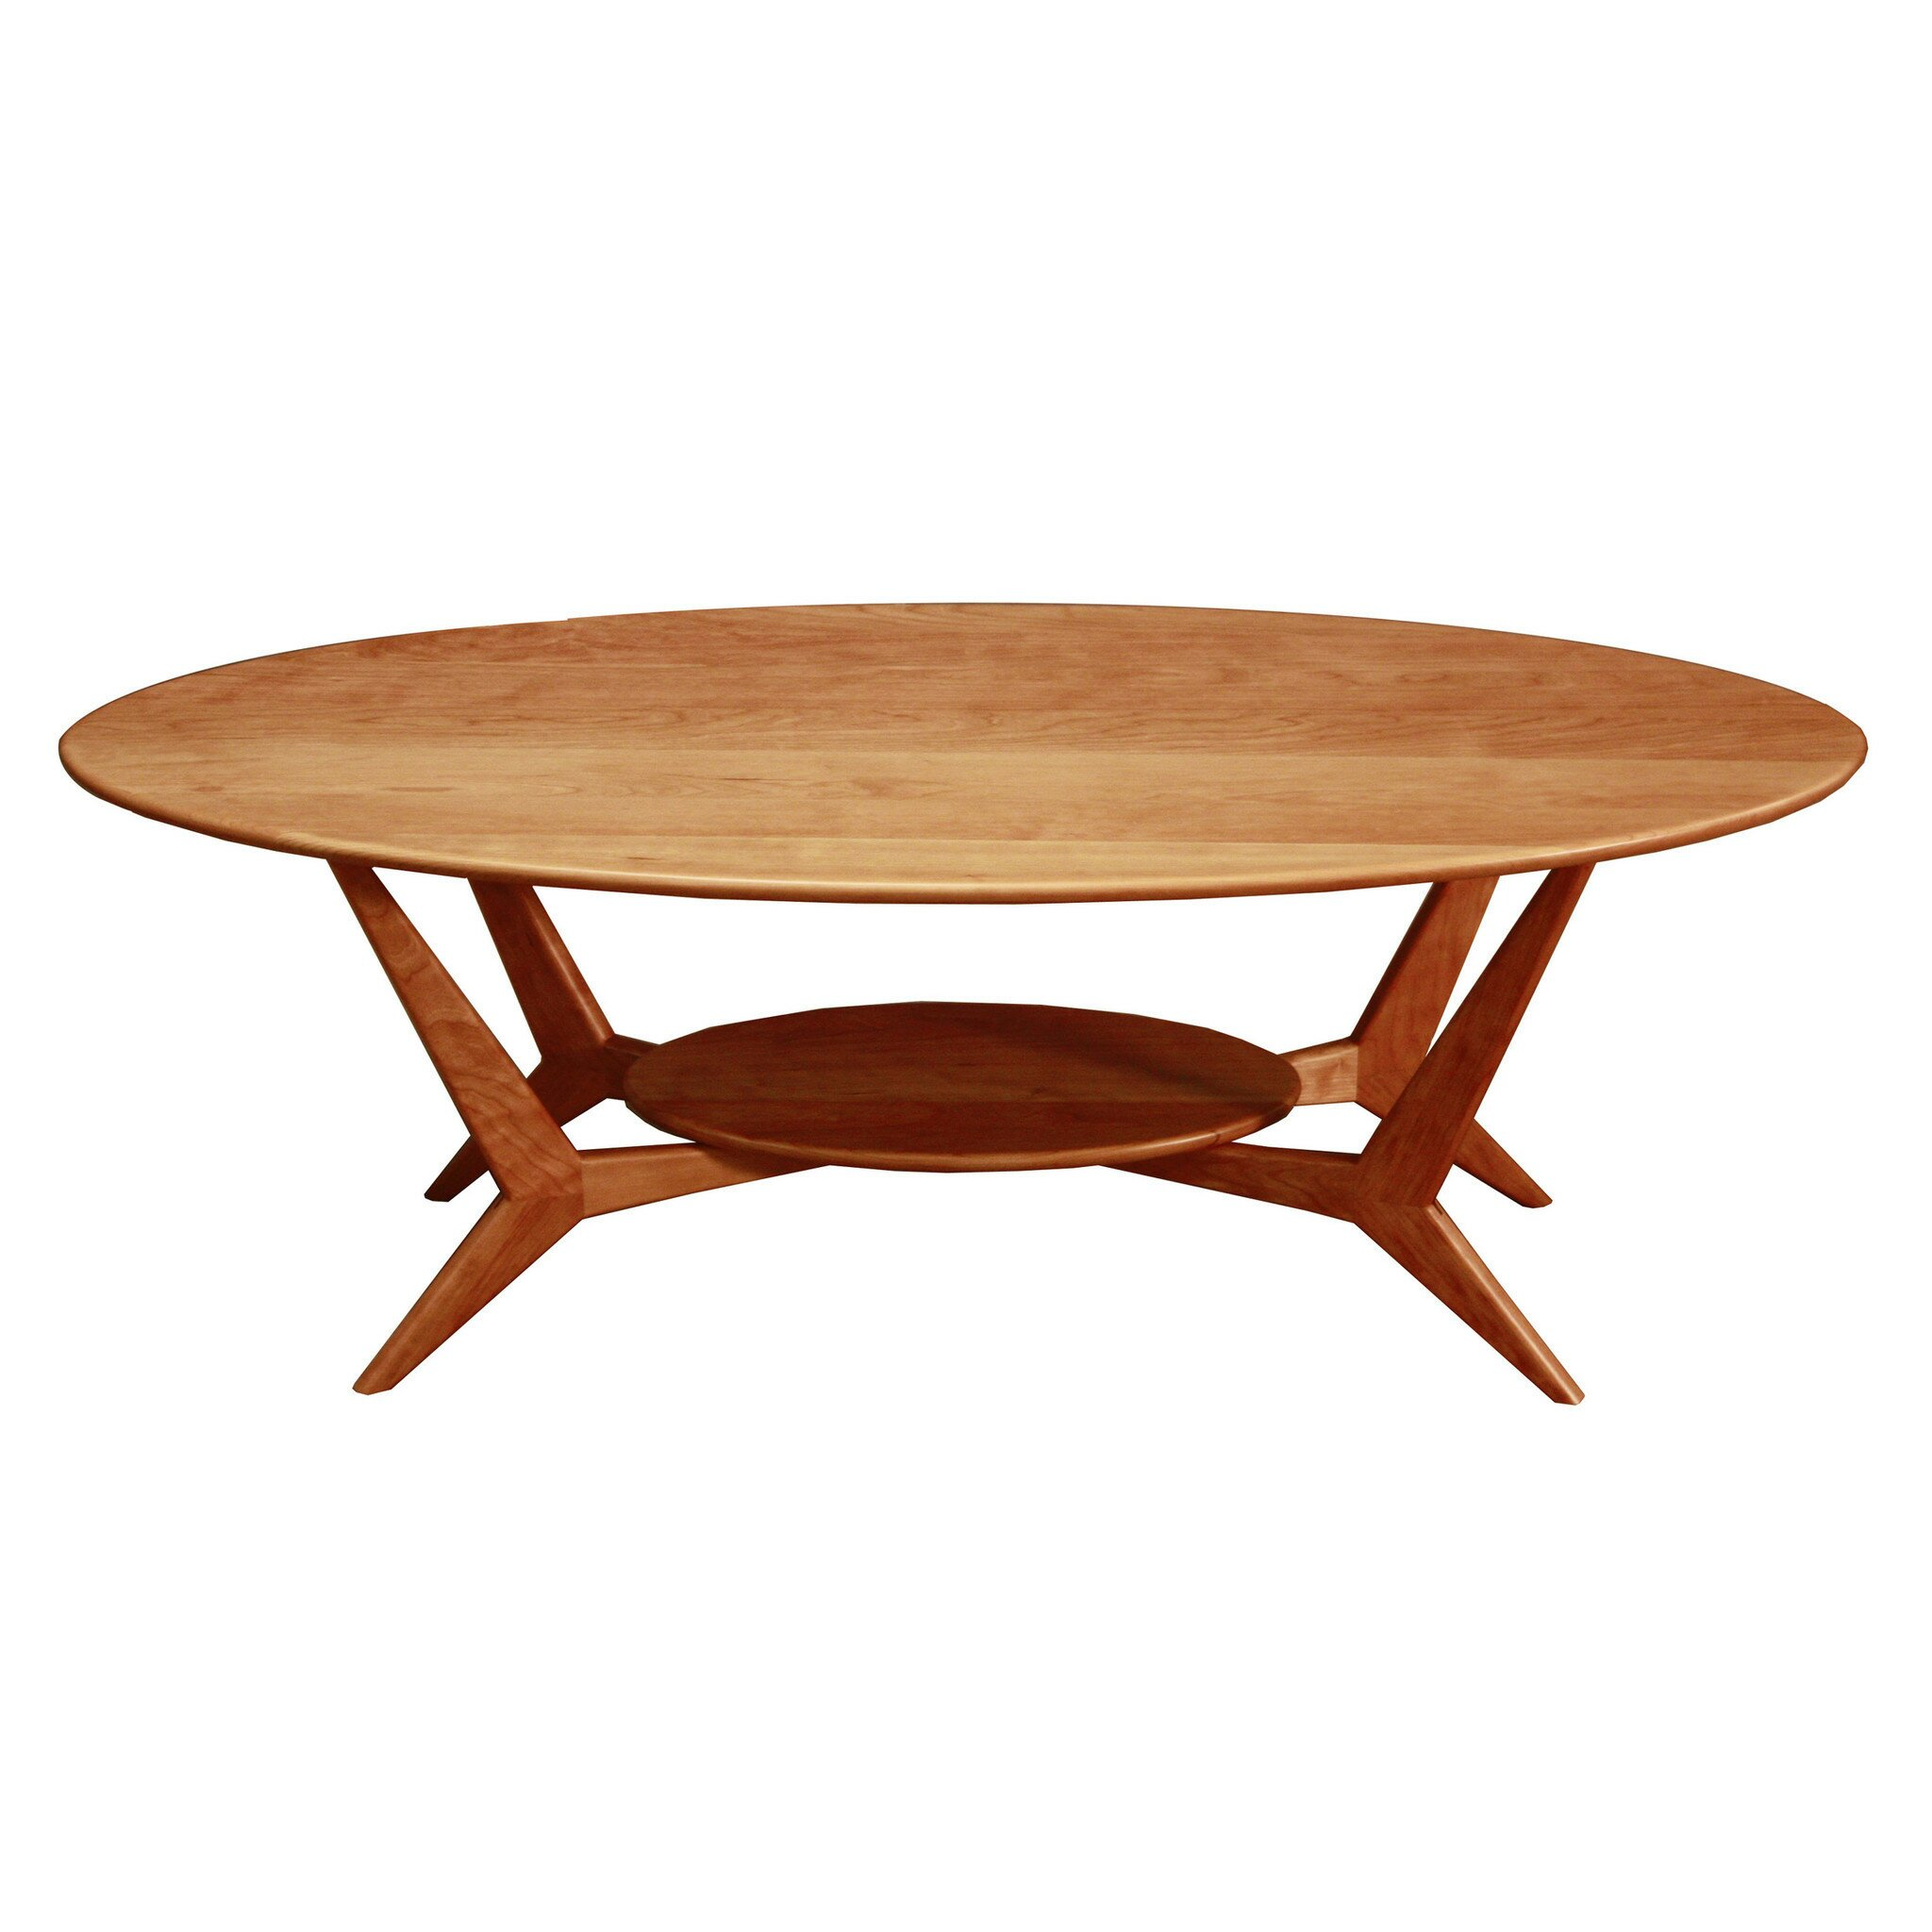 Woodrevival midcentury coffee table reviews wayfairca for Wayfair mid century coffee table